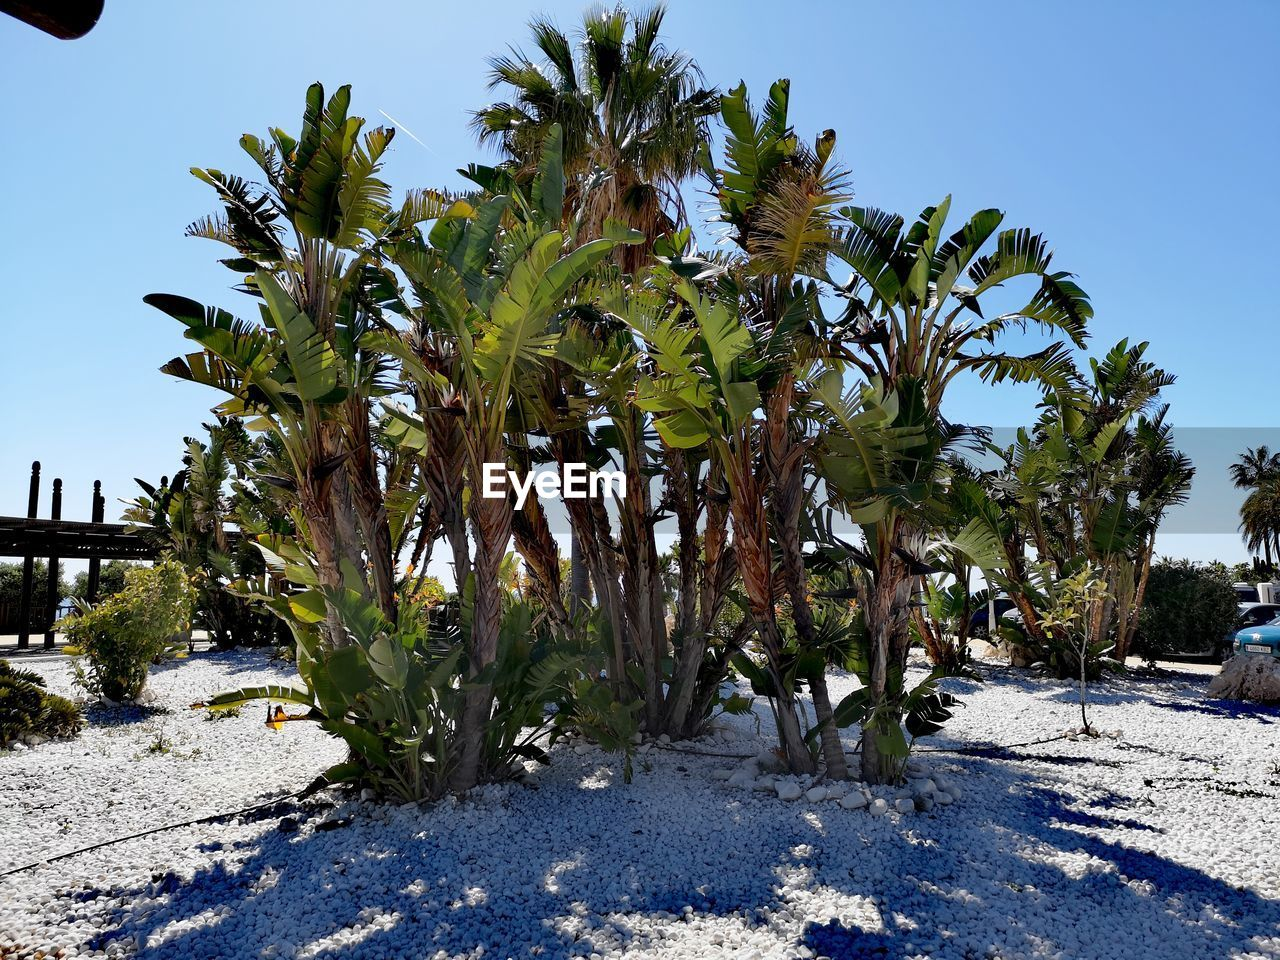 plant, growth, tree, sky, nature, day, sunlight, no people, beauty in nature, land, clear sky, field, outdoors, tranquility, green color, tropical climate, scenics - nature, tranquil scene, palm tree, blue